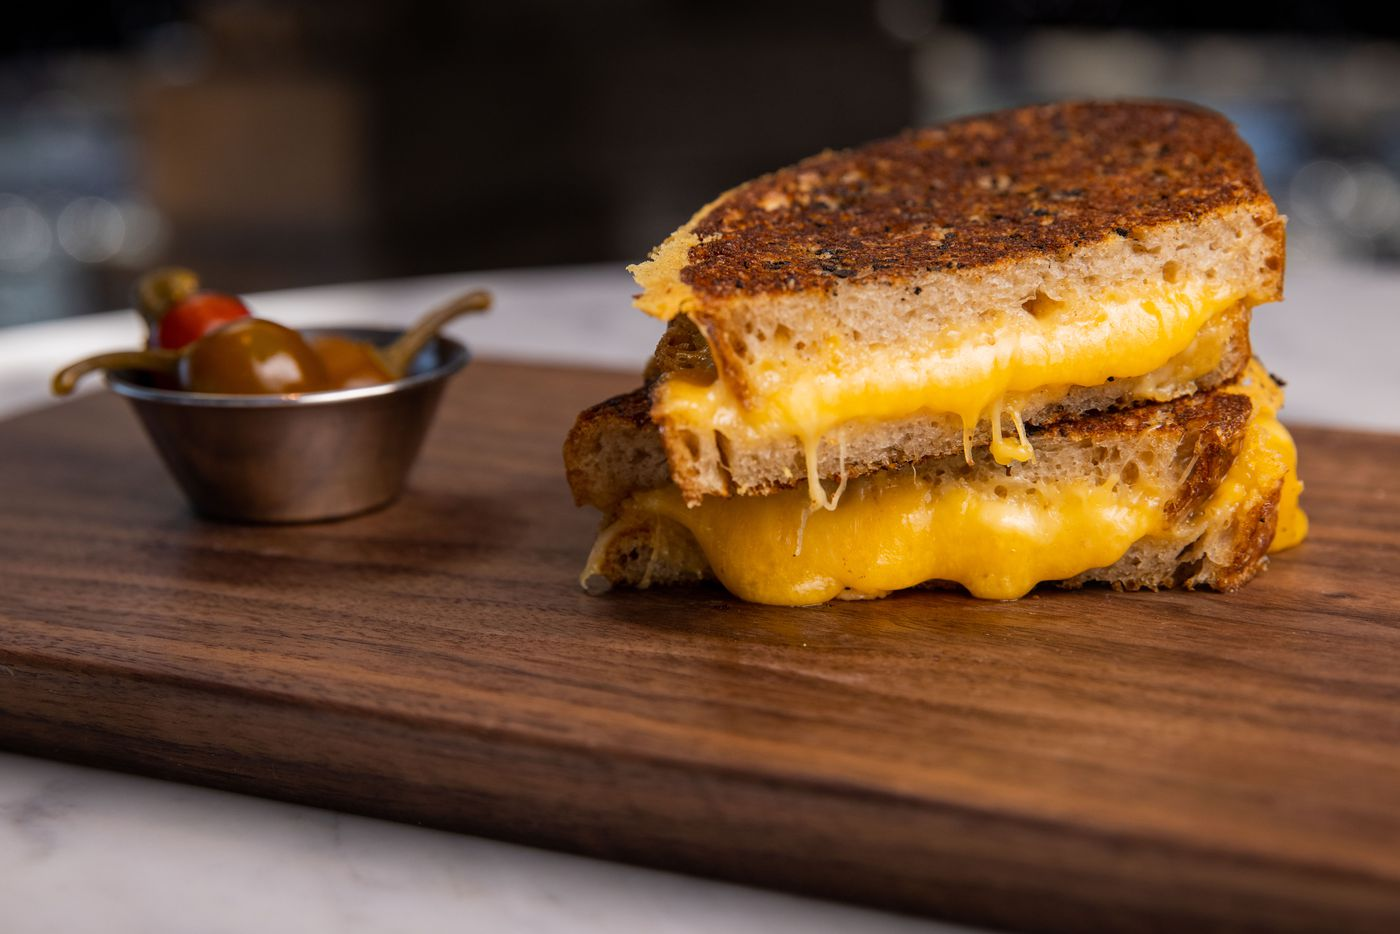 The Truffle Grilled Cheese